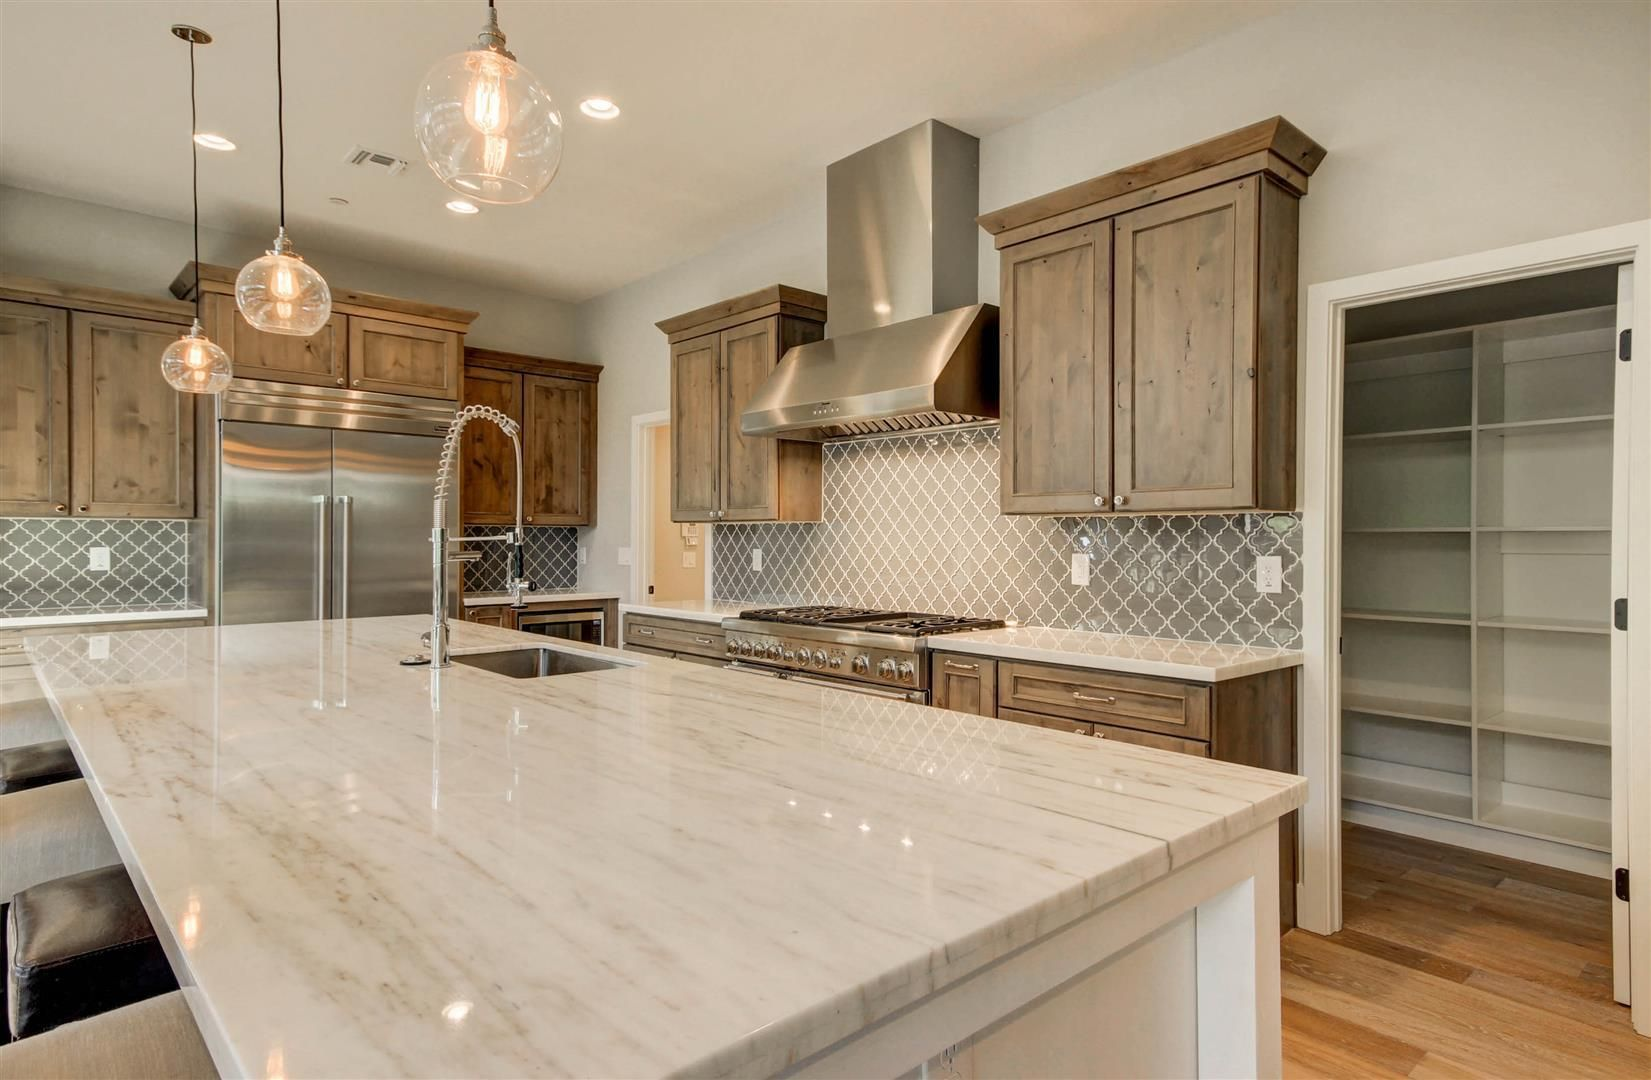 Superior Calacata Marble Countertops, Pendant Lights From Restoration Hardware,  Commercial Thermador Appliances, Top Of